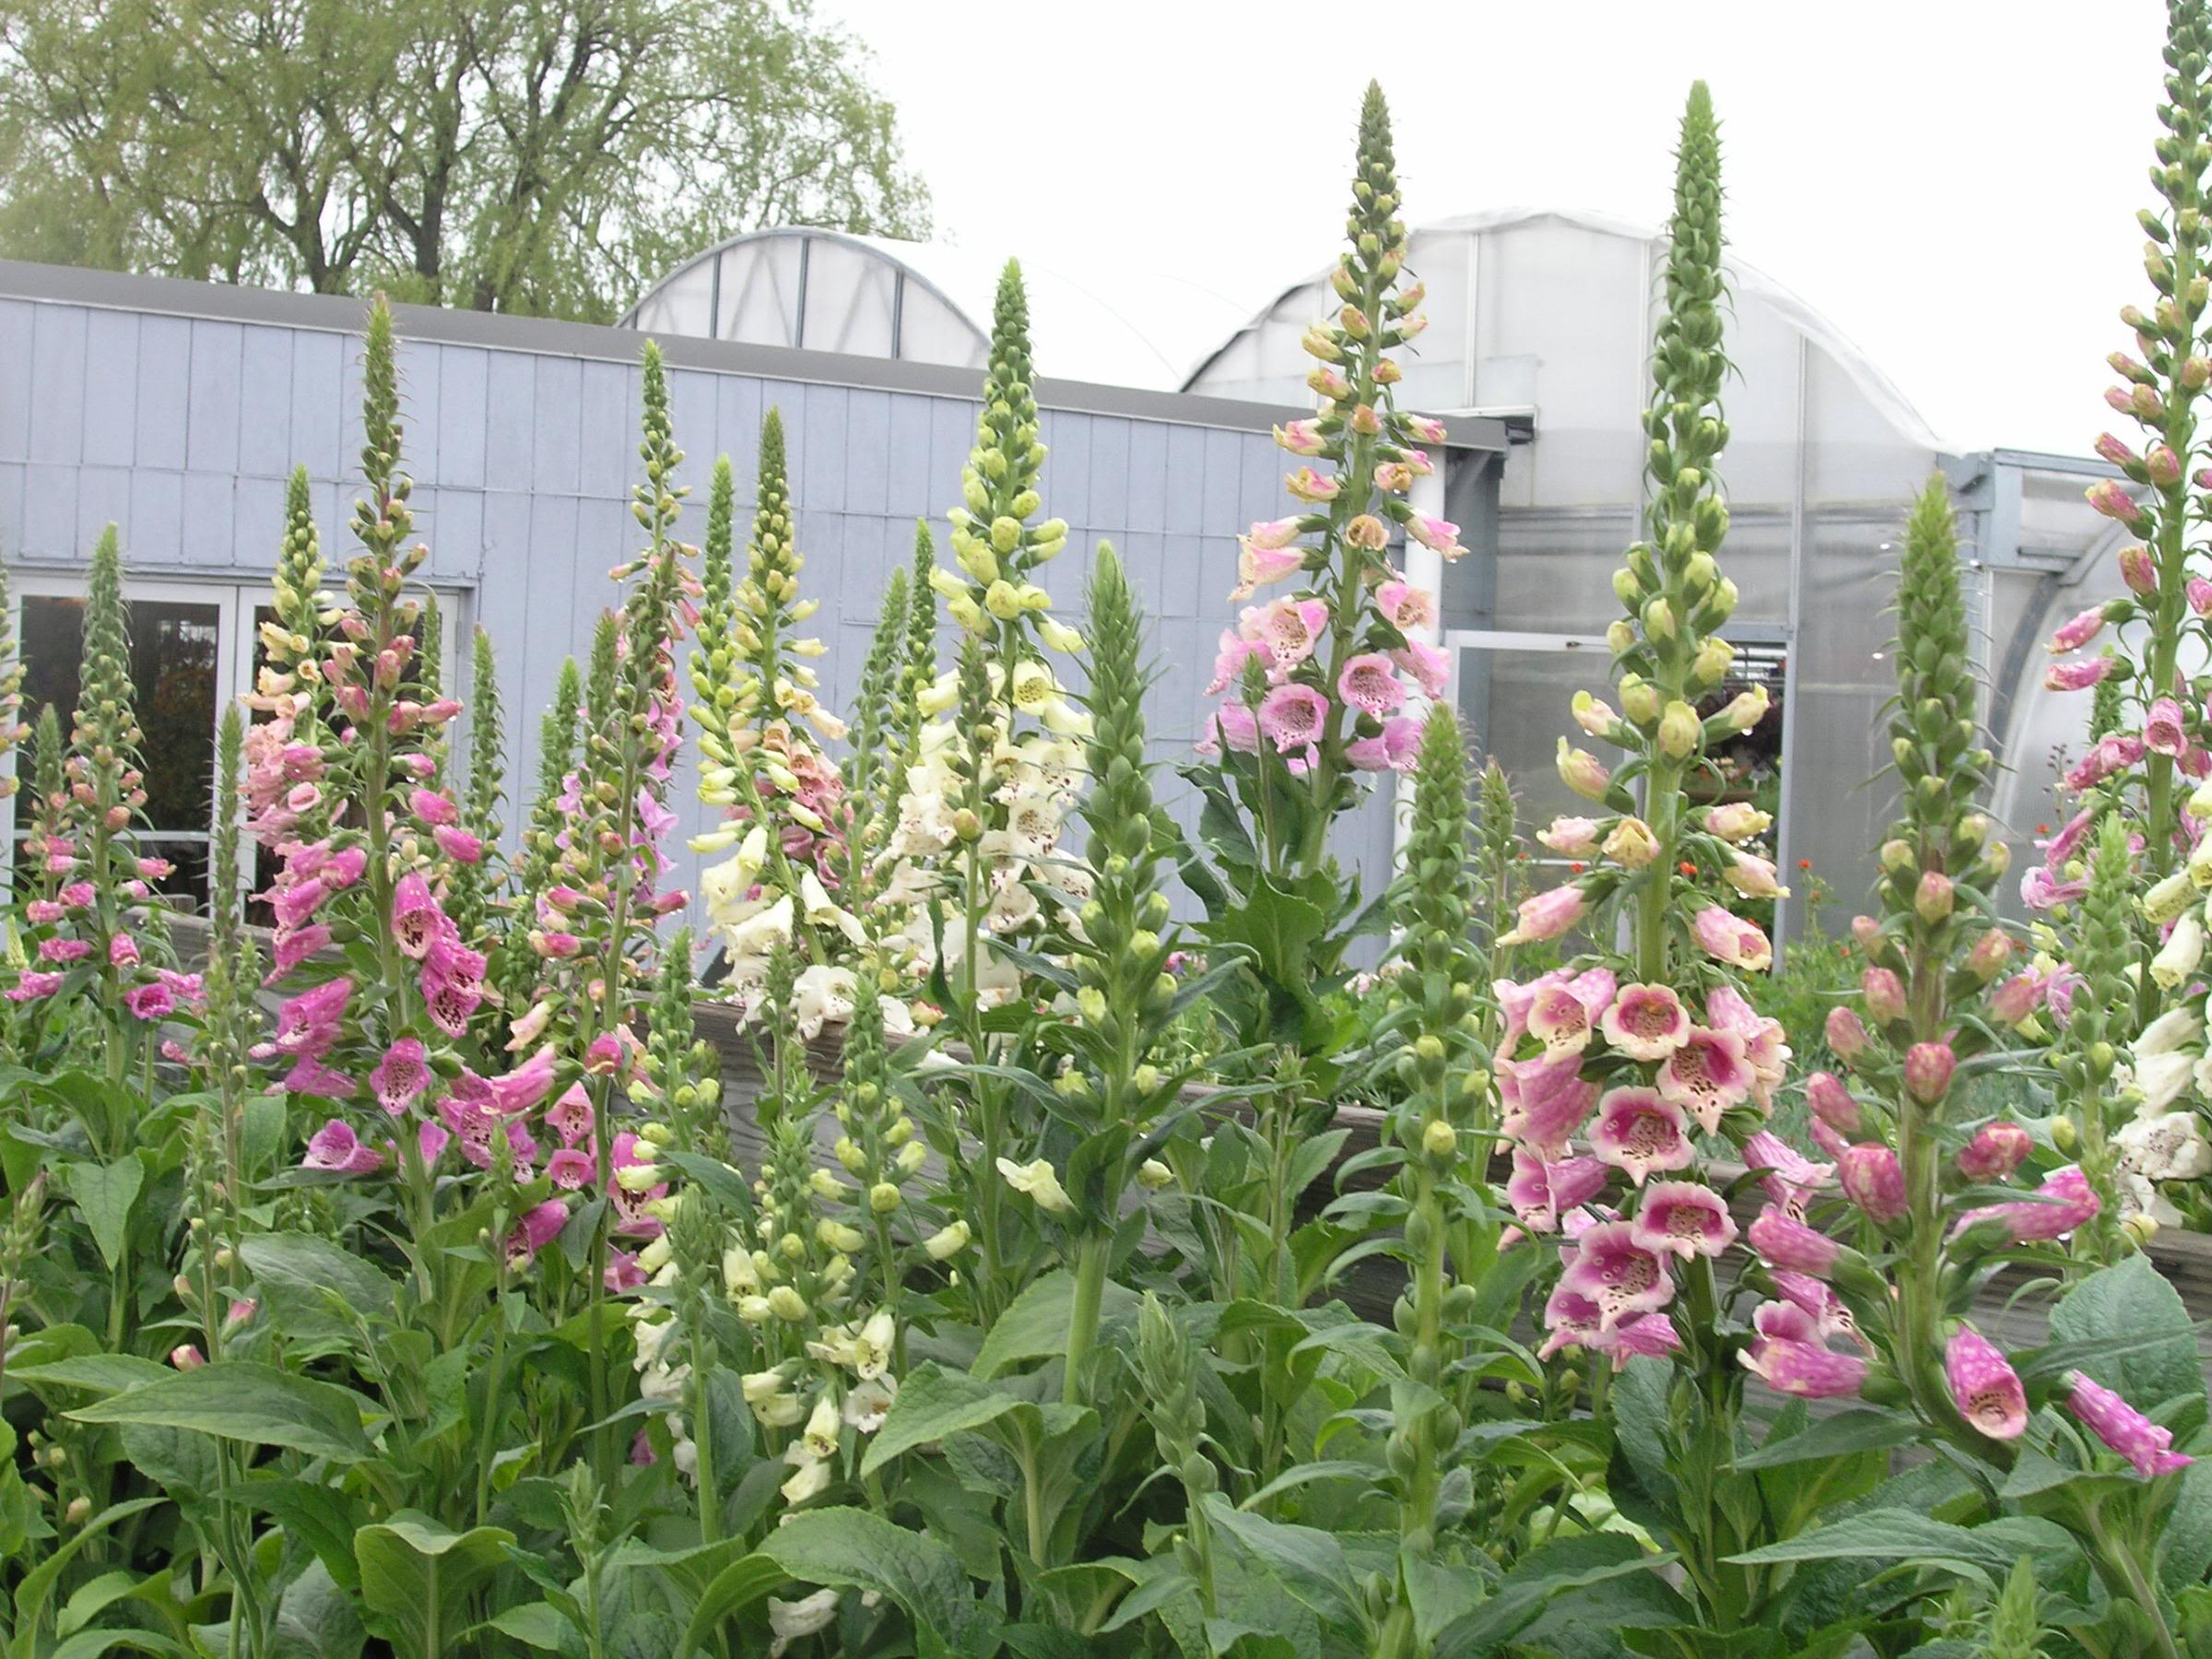 Digitalis Purpurea Excelsior The Site Gardener